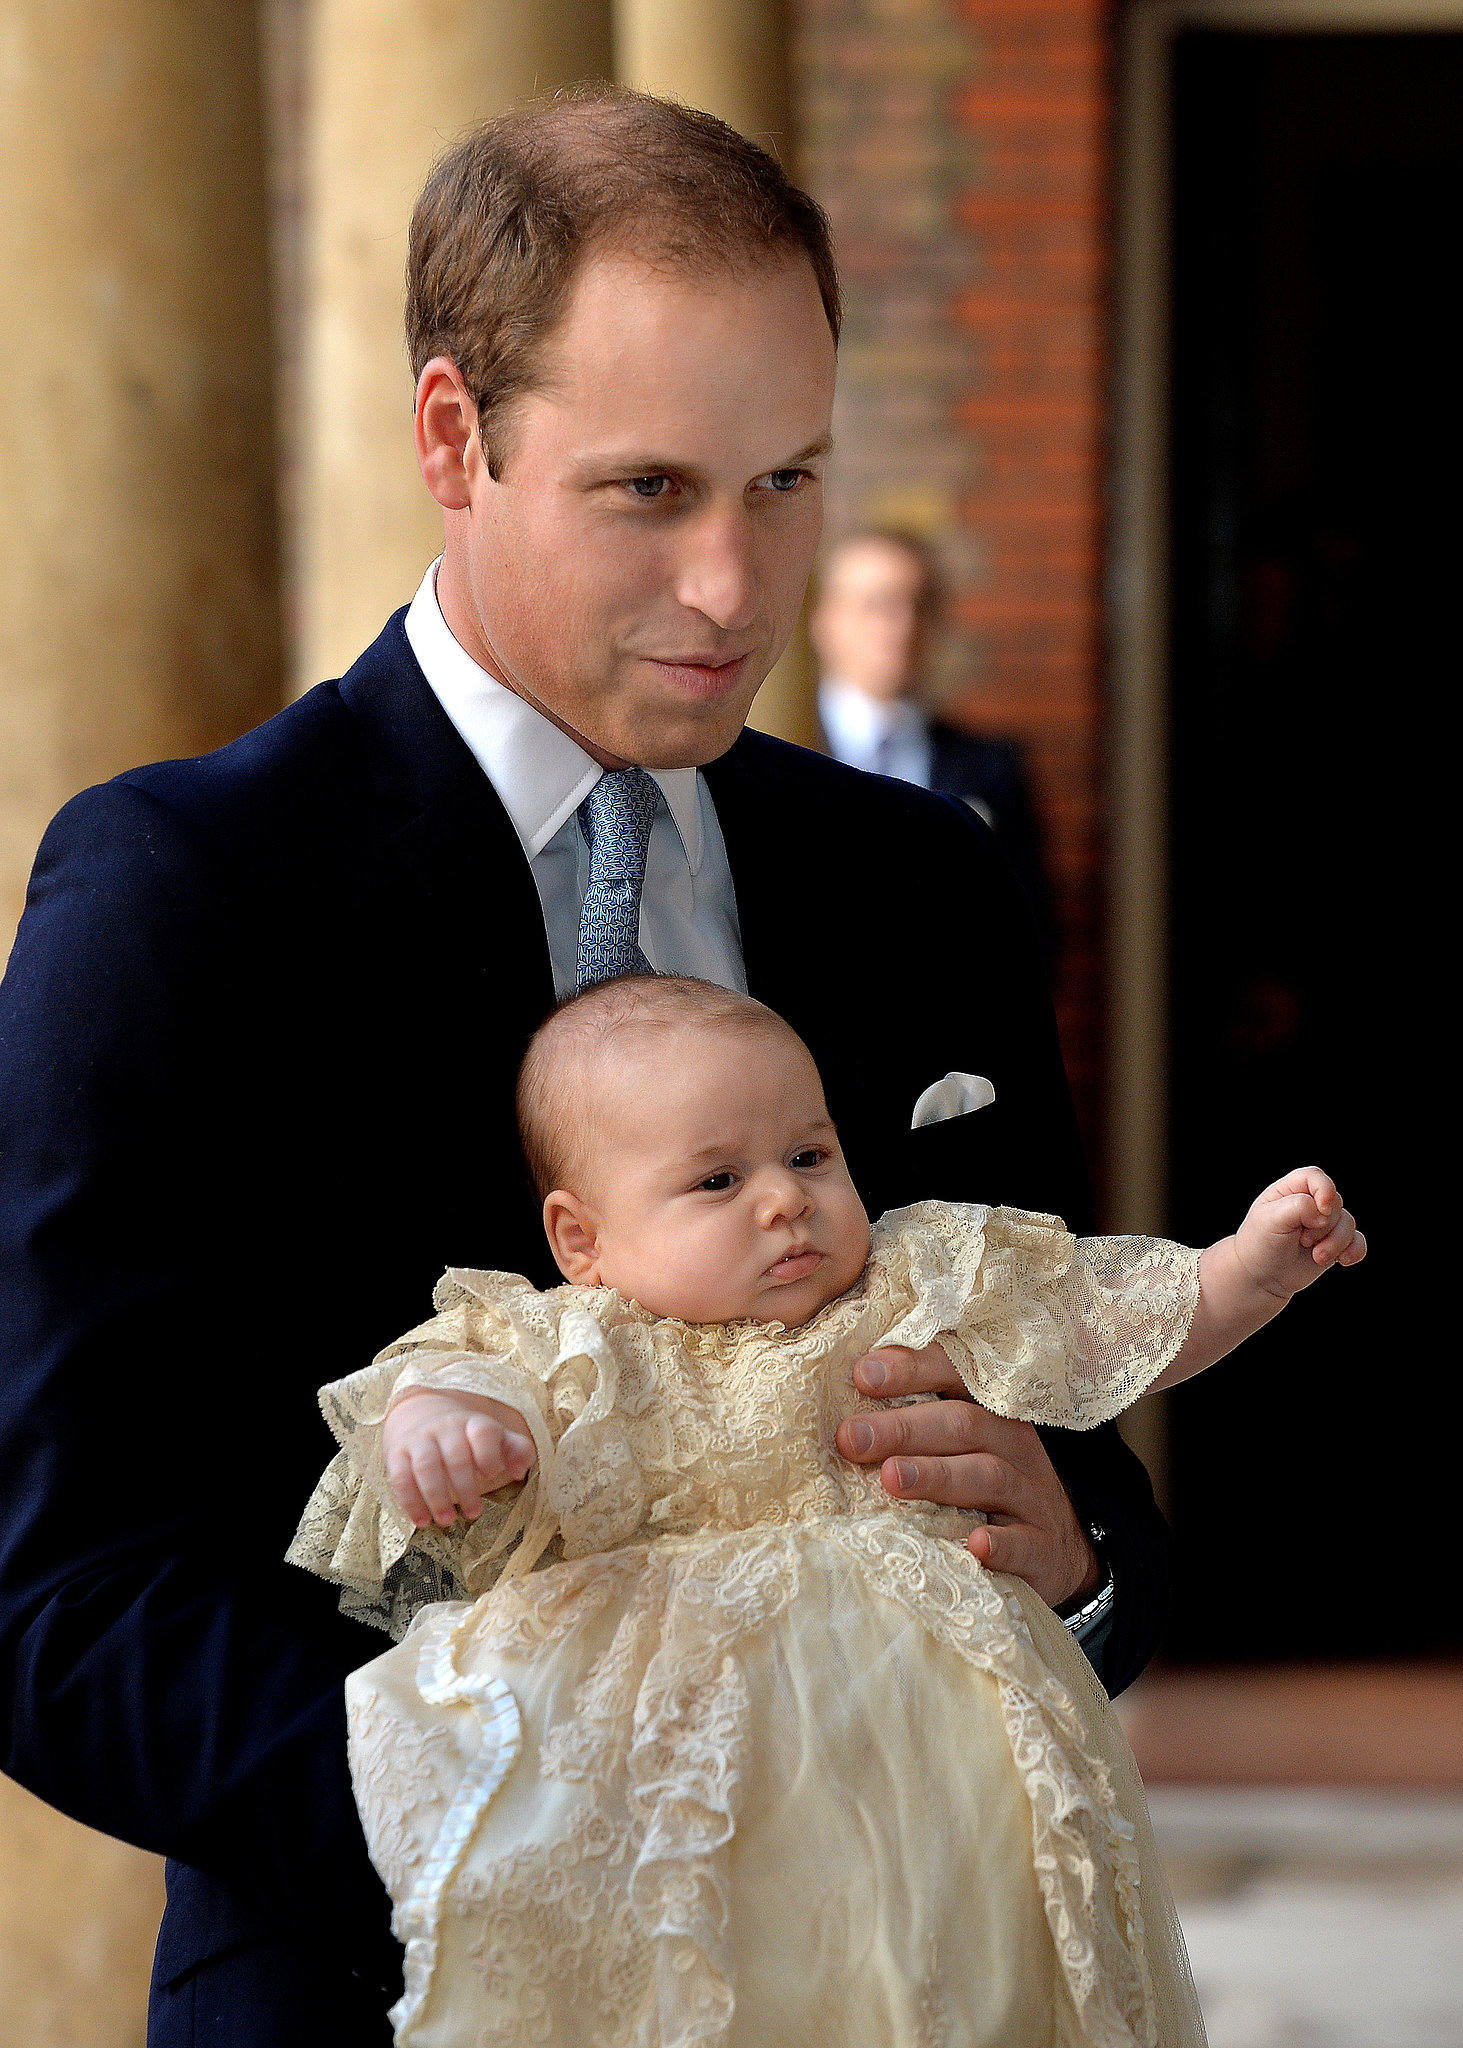 On Oct. 23, 2013, George had his second photo op, outside St. James's Palace in London, when he attended his christening.